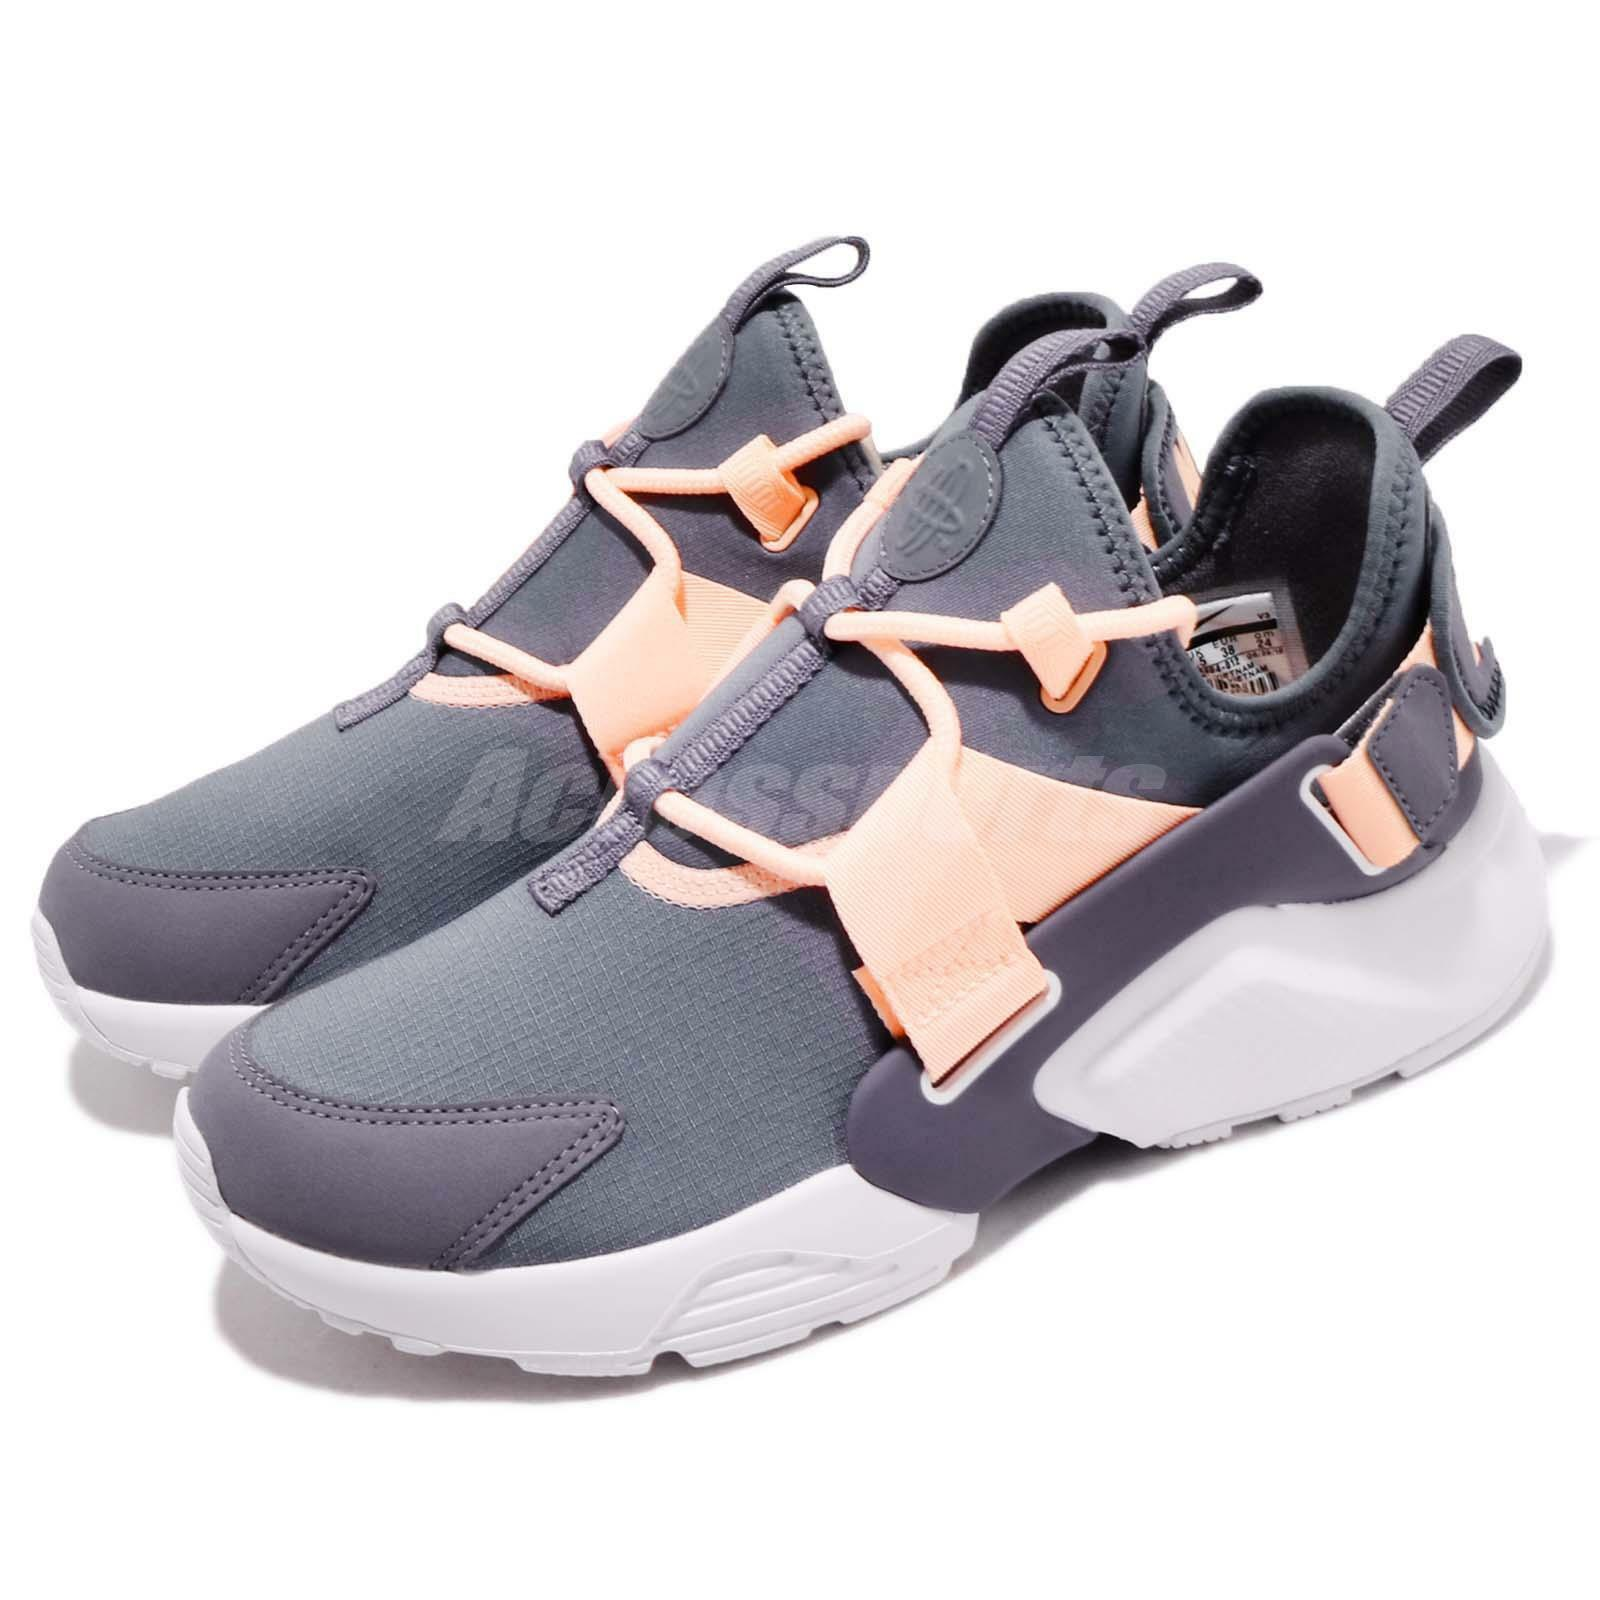 Nike femmes  Air Huarache City Low Light Carbon femmes Running Chaussures AH6804-012